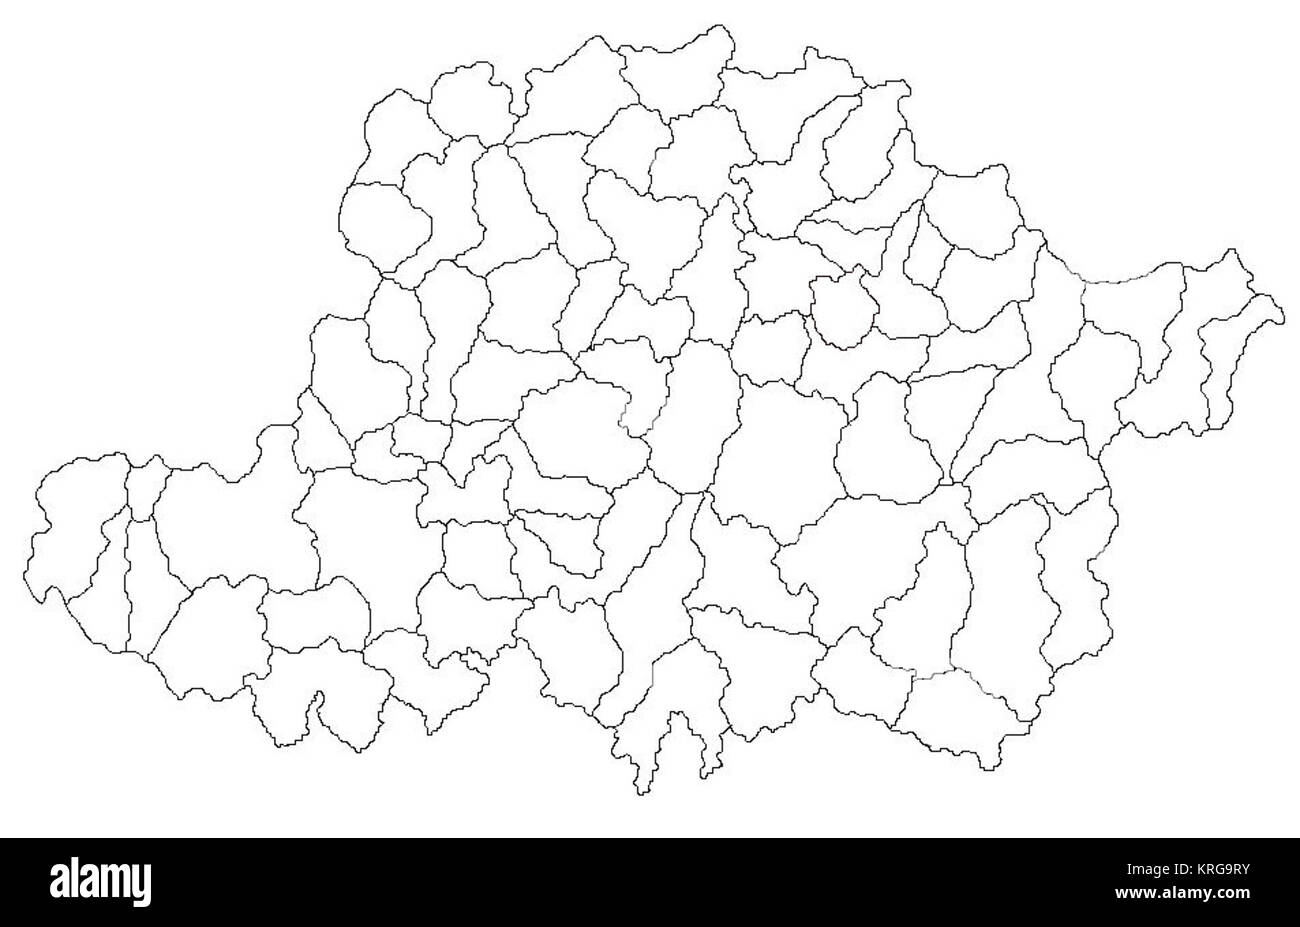 Romania Arad Location map Stock Photo: 169389359 - Alamy